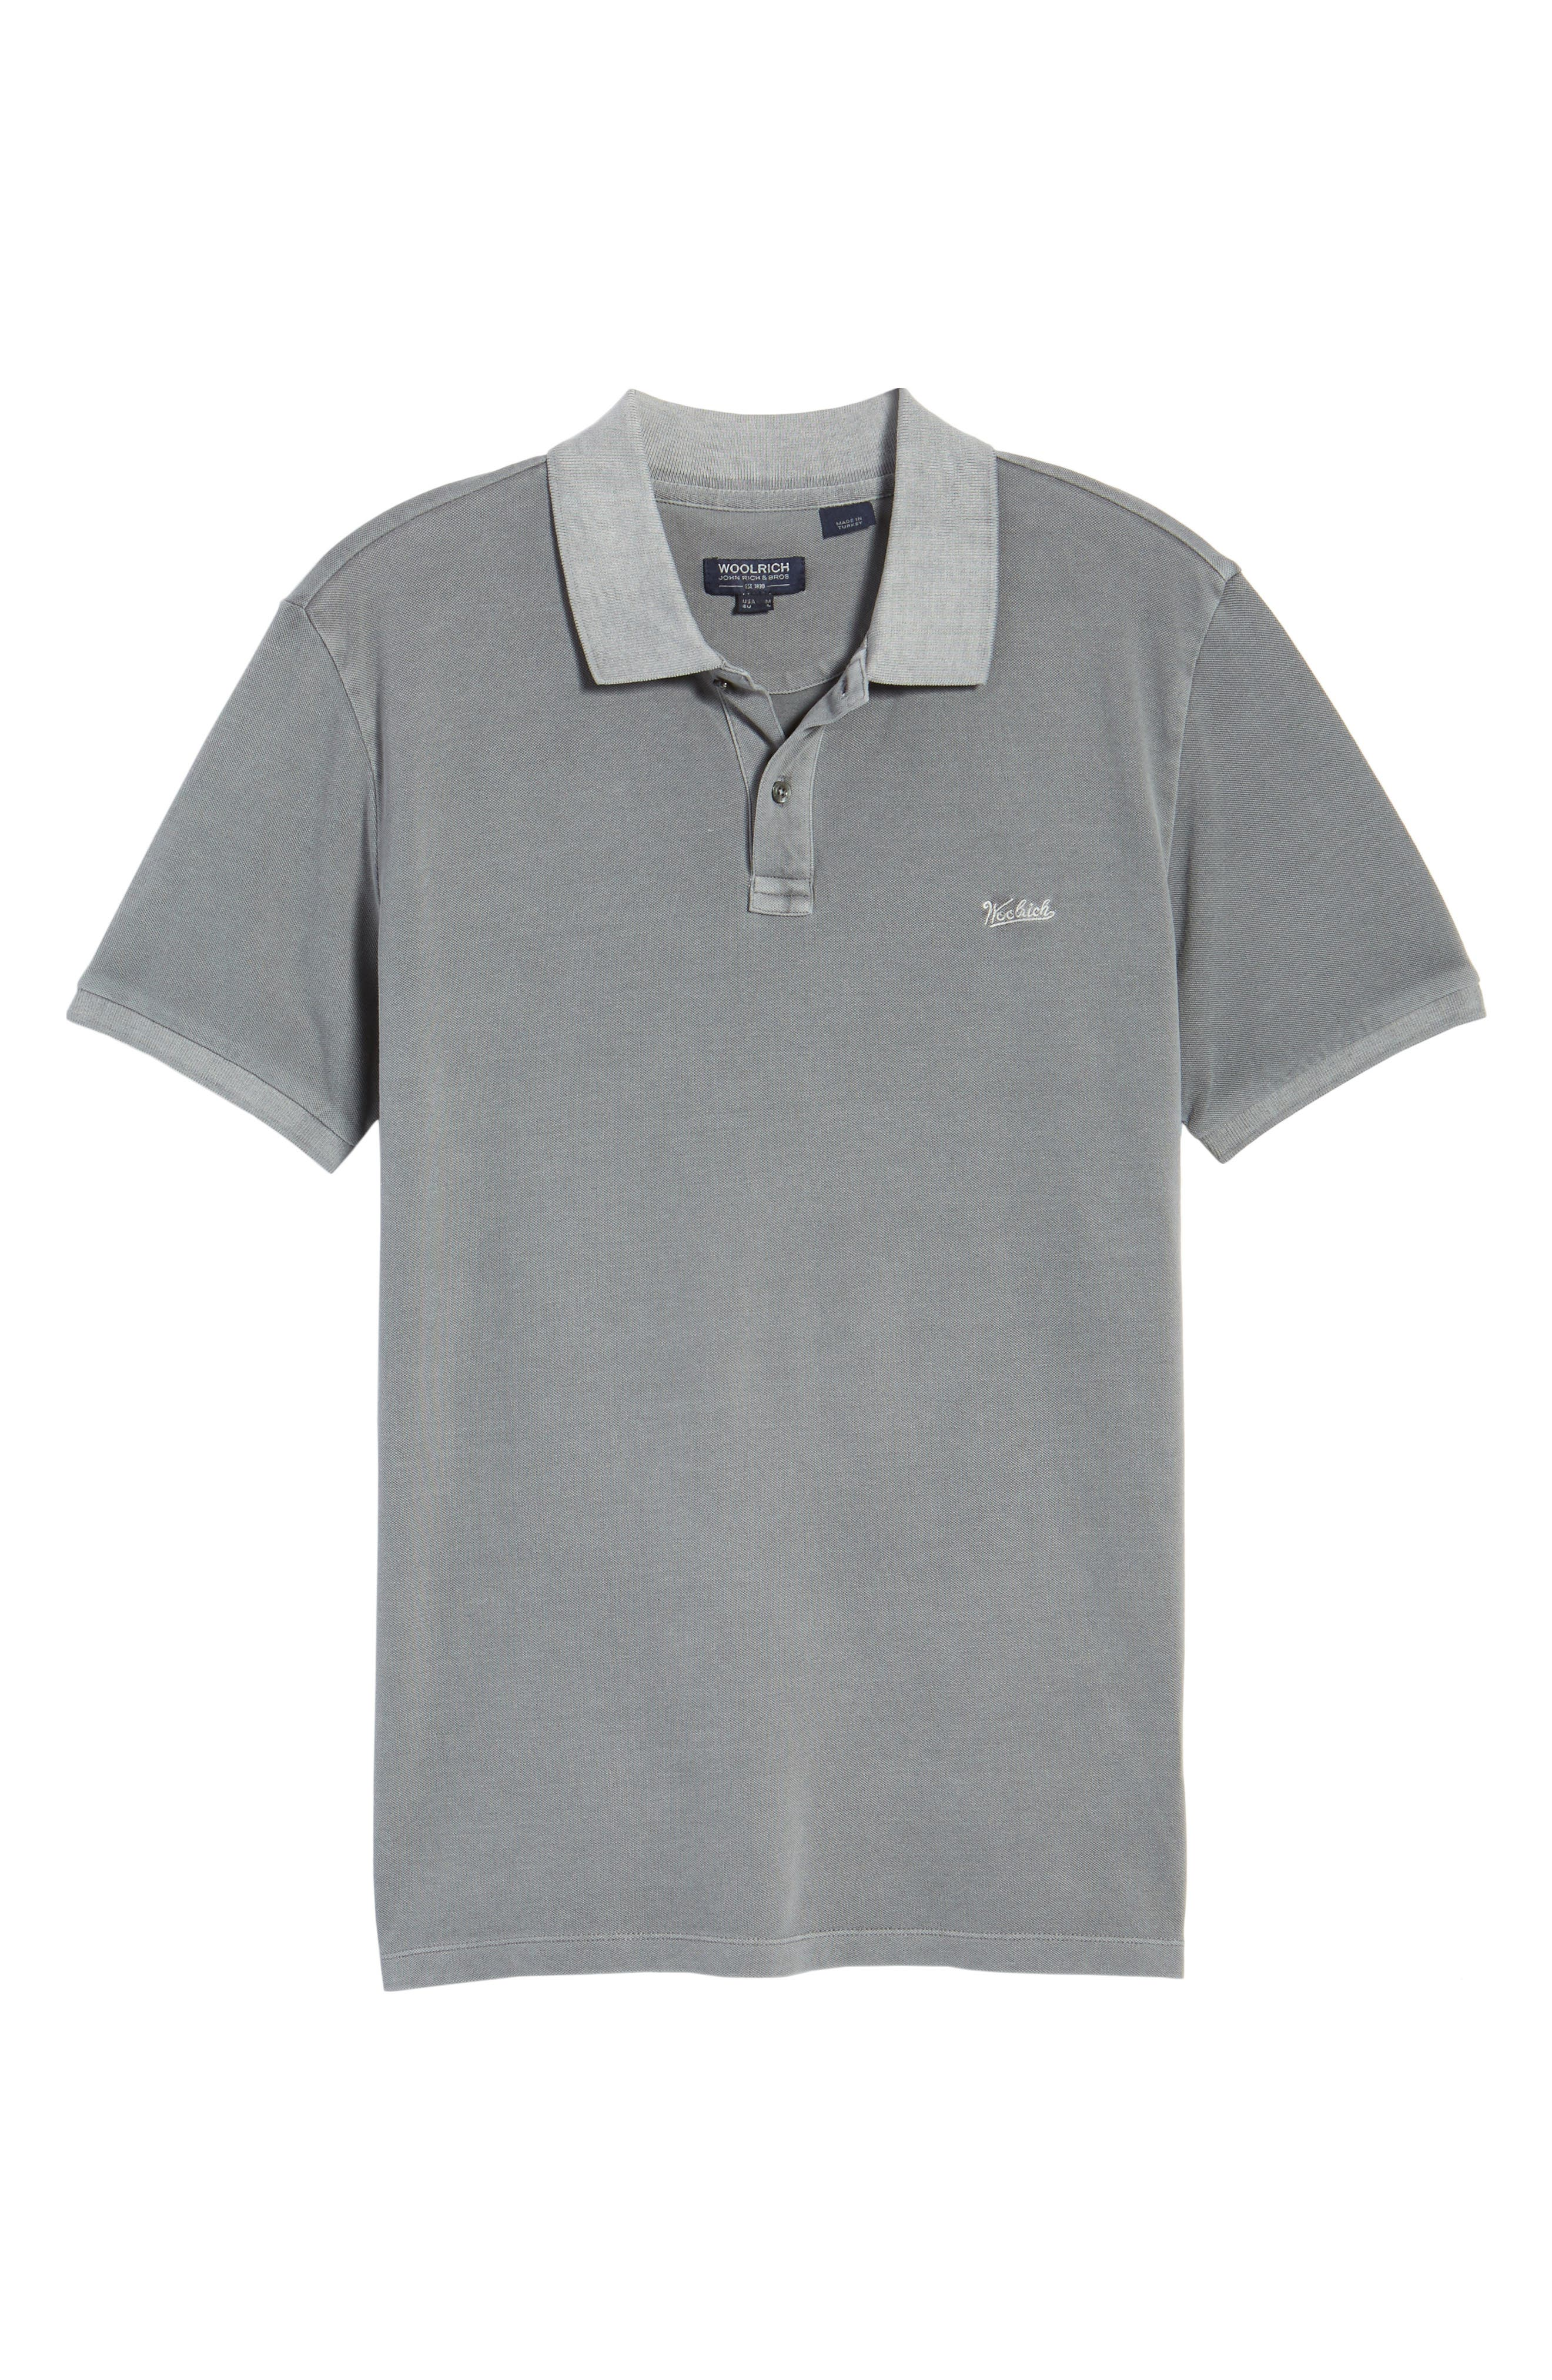 & Bros. Vintage Mackinack Polo,                             Alternate thumbnail 6, color,                             STEEL GREY